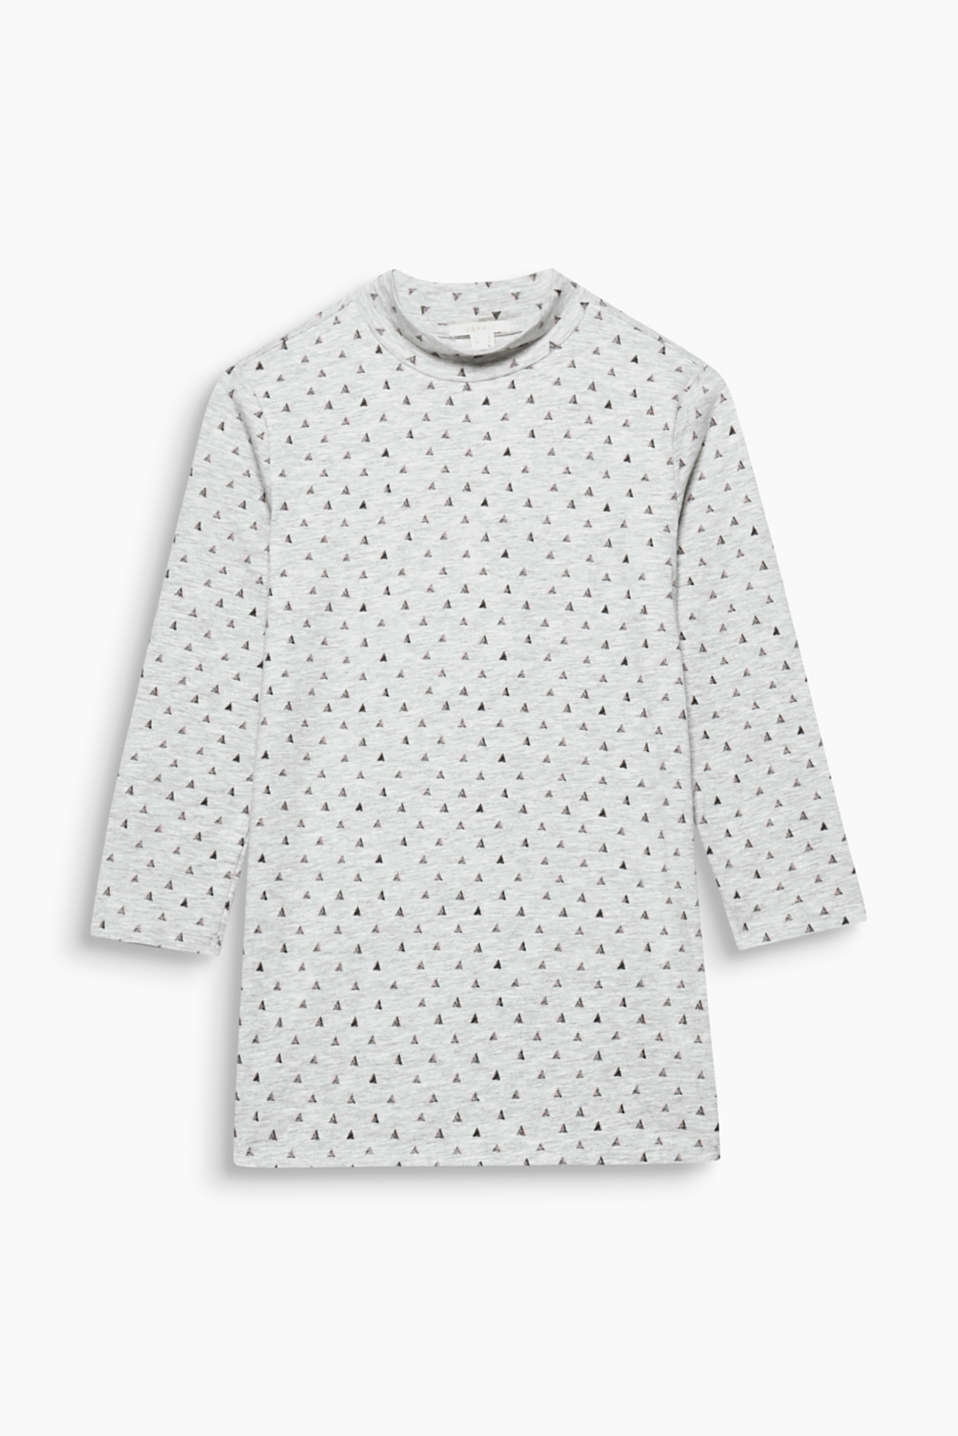 This soft melange top with a turtleneck and an all-over print works well on its own or under other garments.